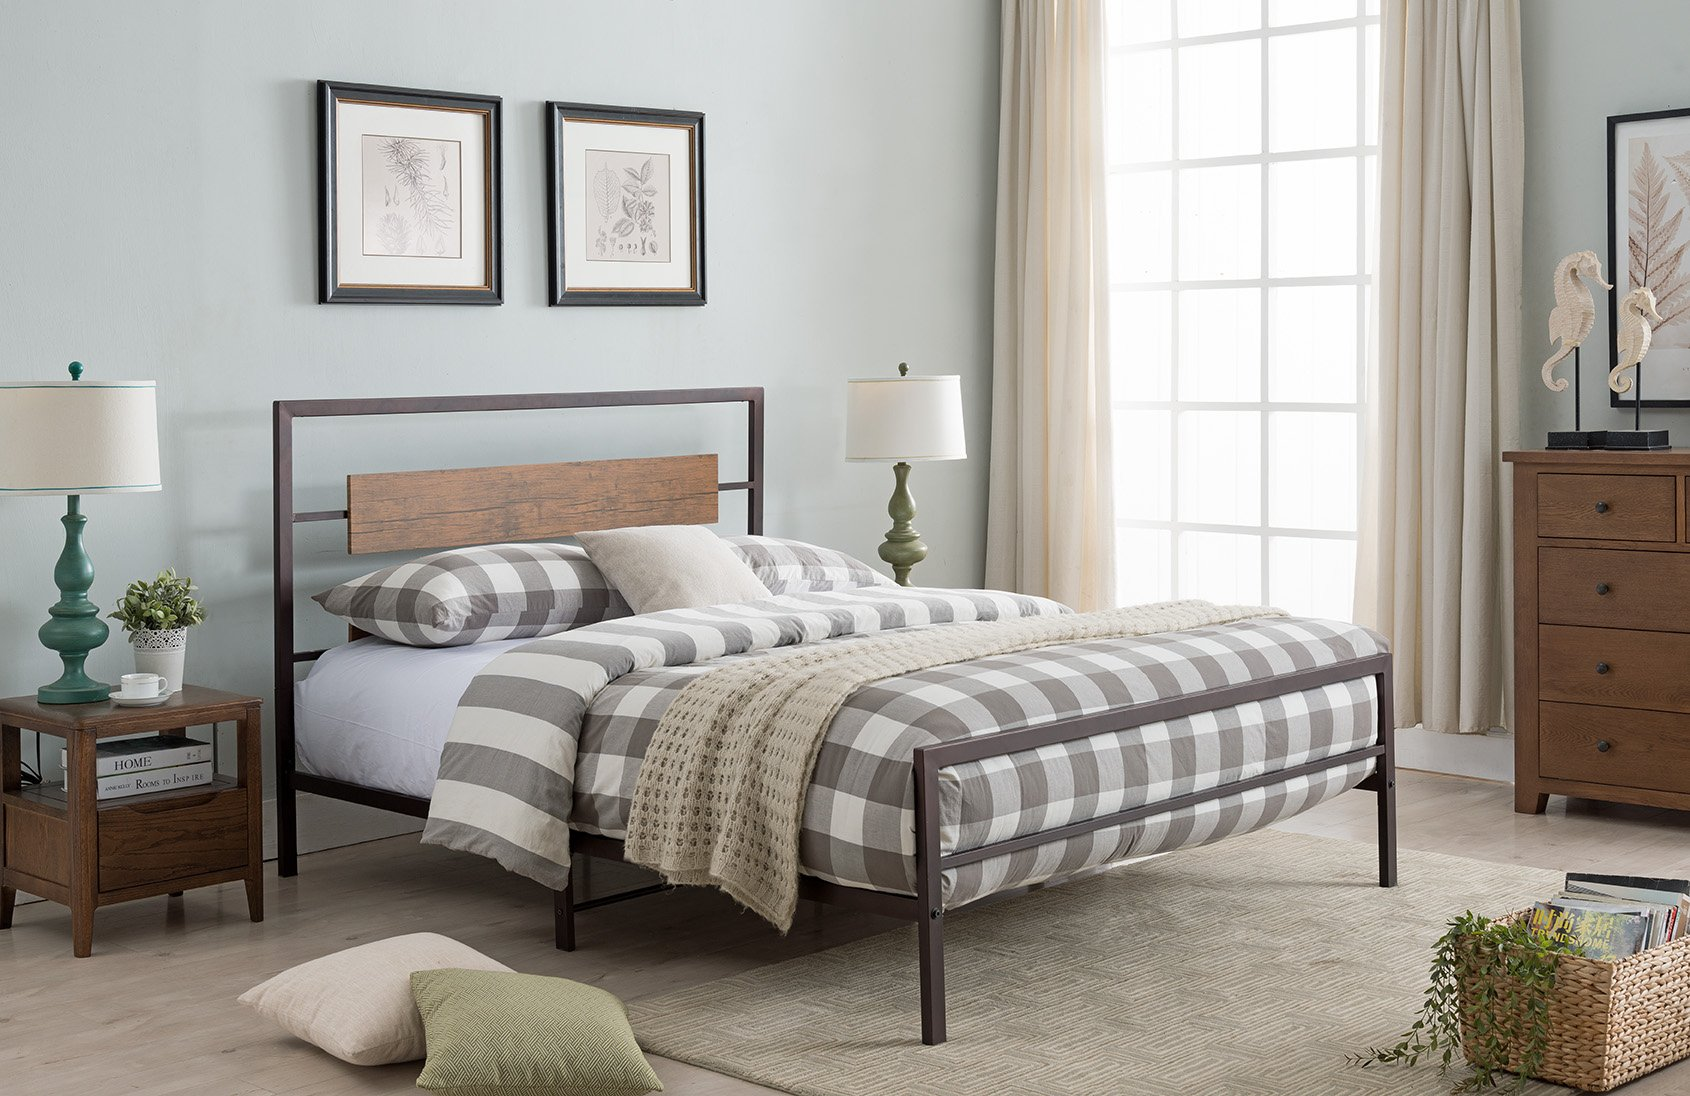 Kings Brand Furniture – Verona Pewter Metal/Walnut Wood Bed with Headboard & Footboard, King - Update your bedroom with the Verona Platform Bed, Headboard, Footboard, Rails, Slats & Center Support. This bed features a strong construction with slats that form a sturdy base to keep your mattress in good shape for longer. Featuring a metal frame with a rectangular reclaimed wood look. - bedroom-furniture, bedroom, bed-frames - 811VEYu5ybL -